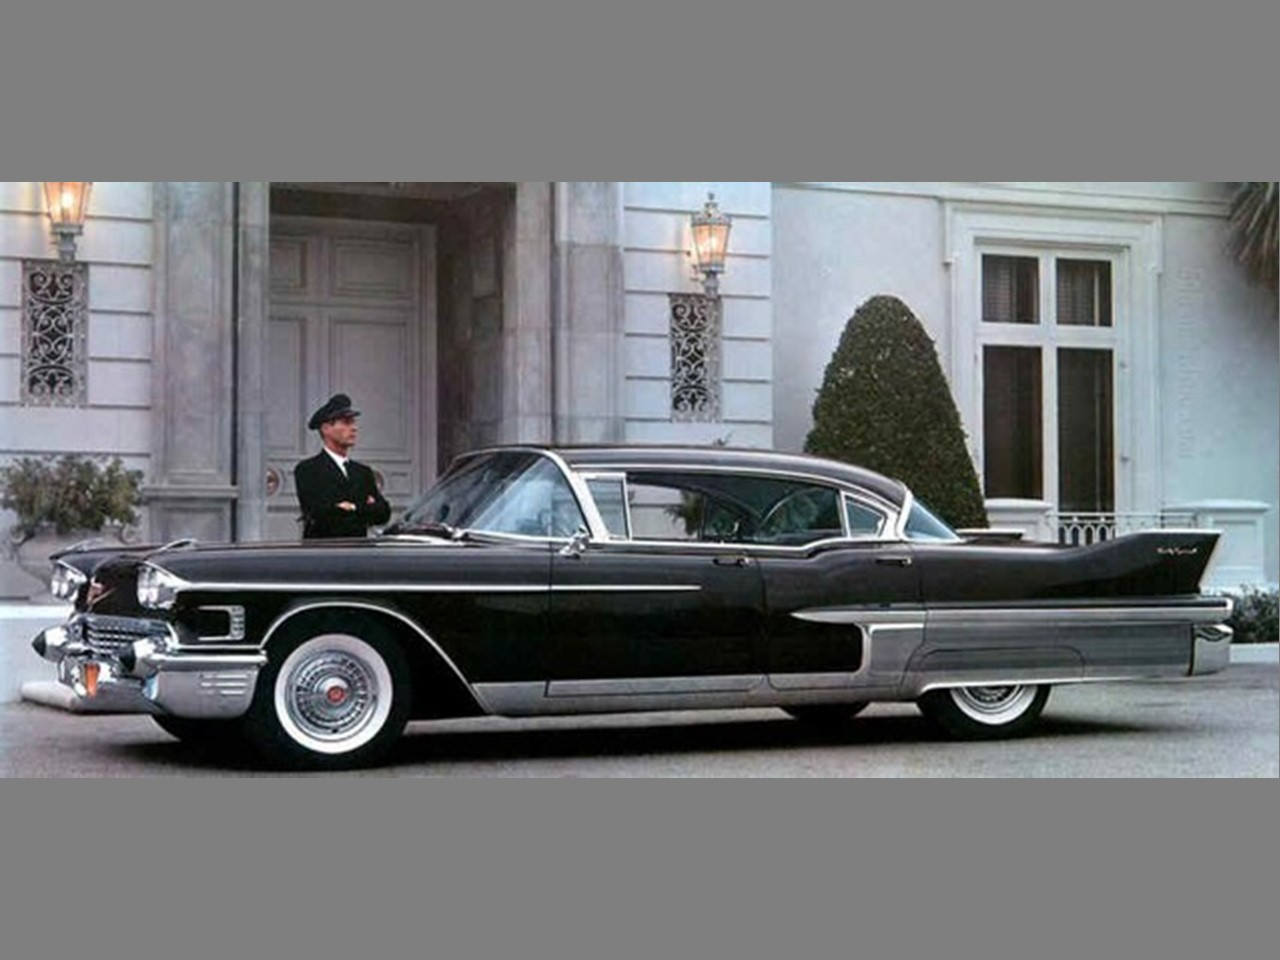 1958 Cadillac Fleetwood Series Sixty-Special